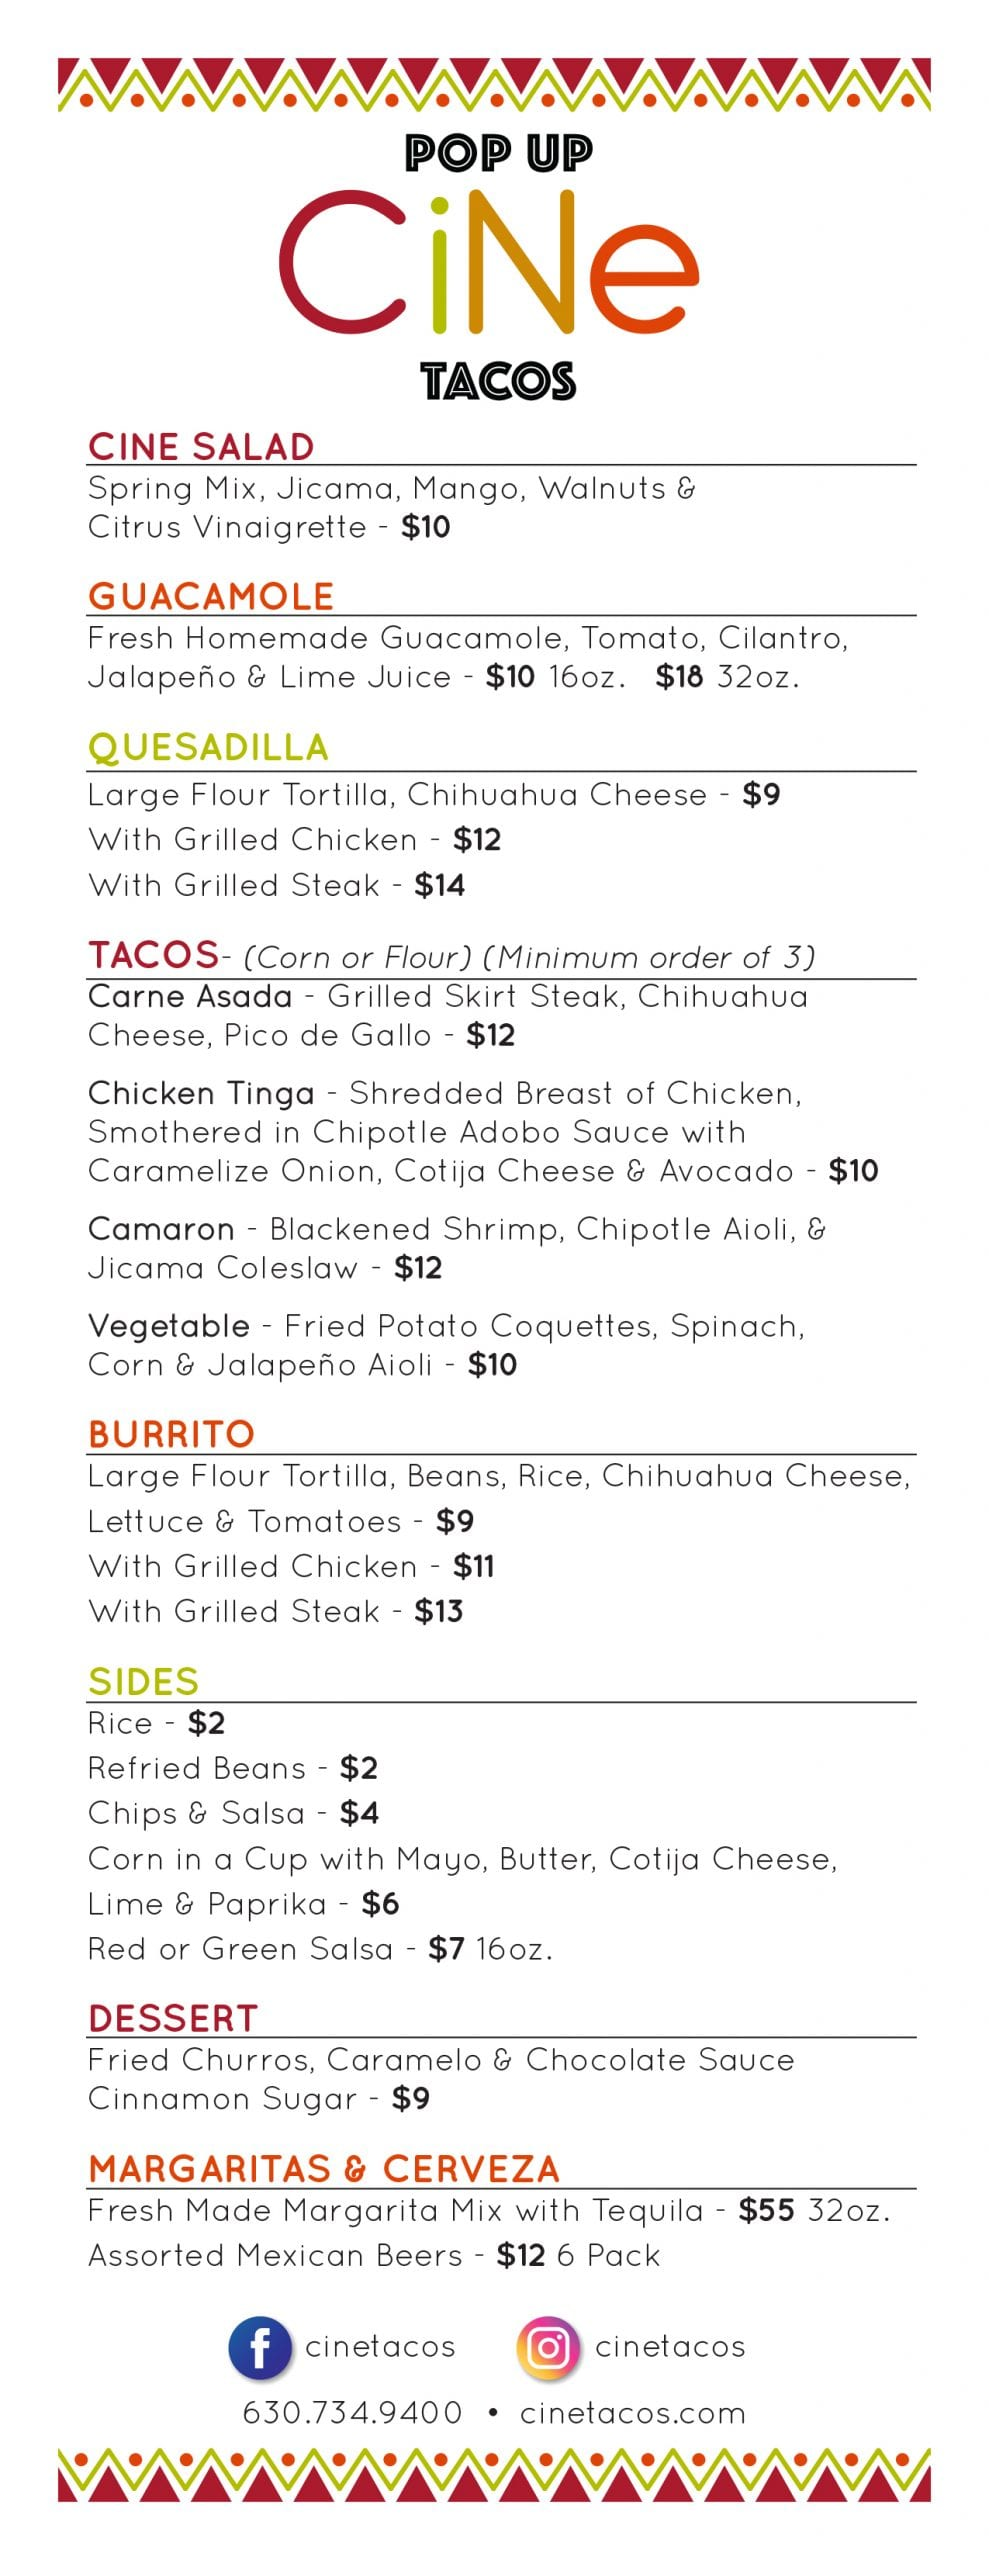 CiNe Pop Up Tacos Menu